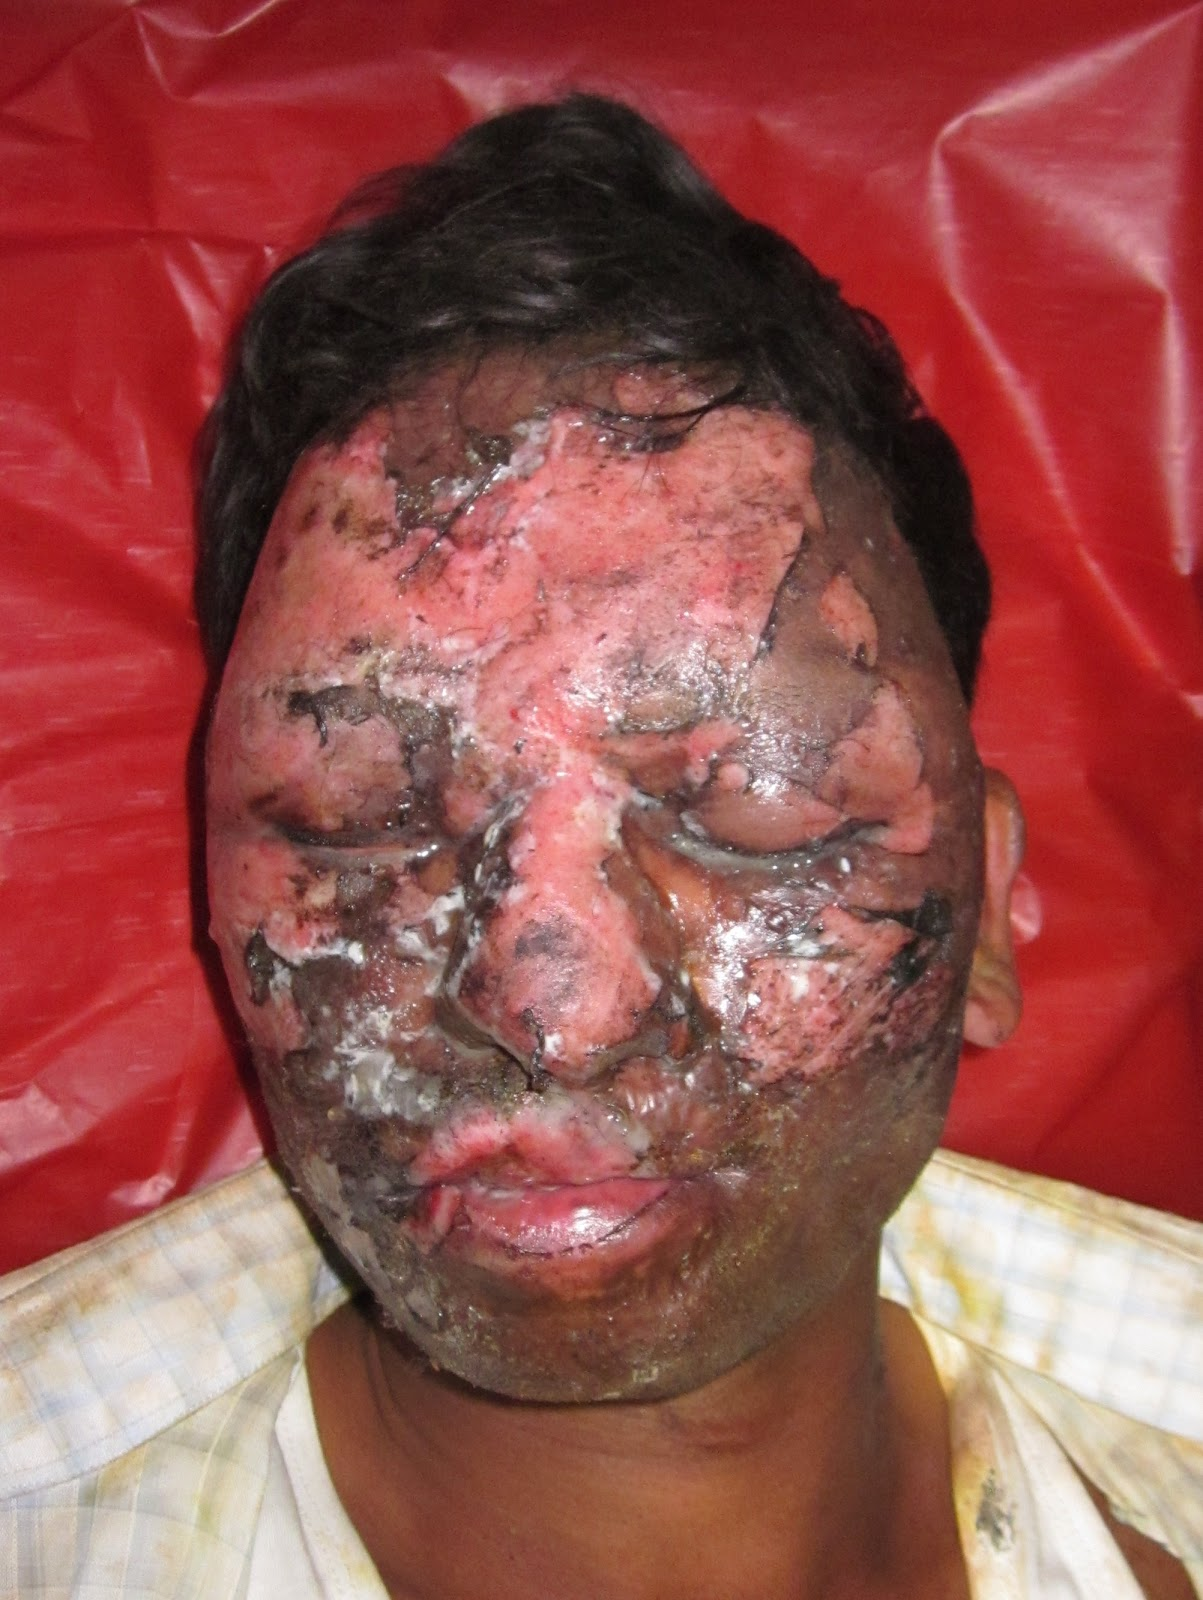 Has facial burn pictures super